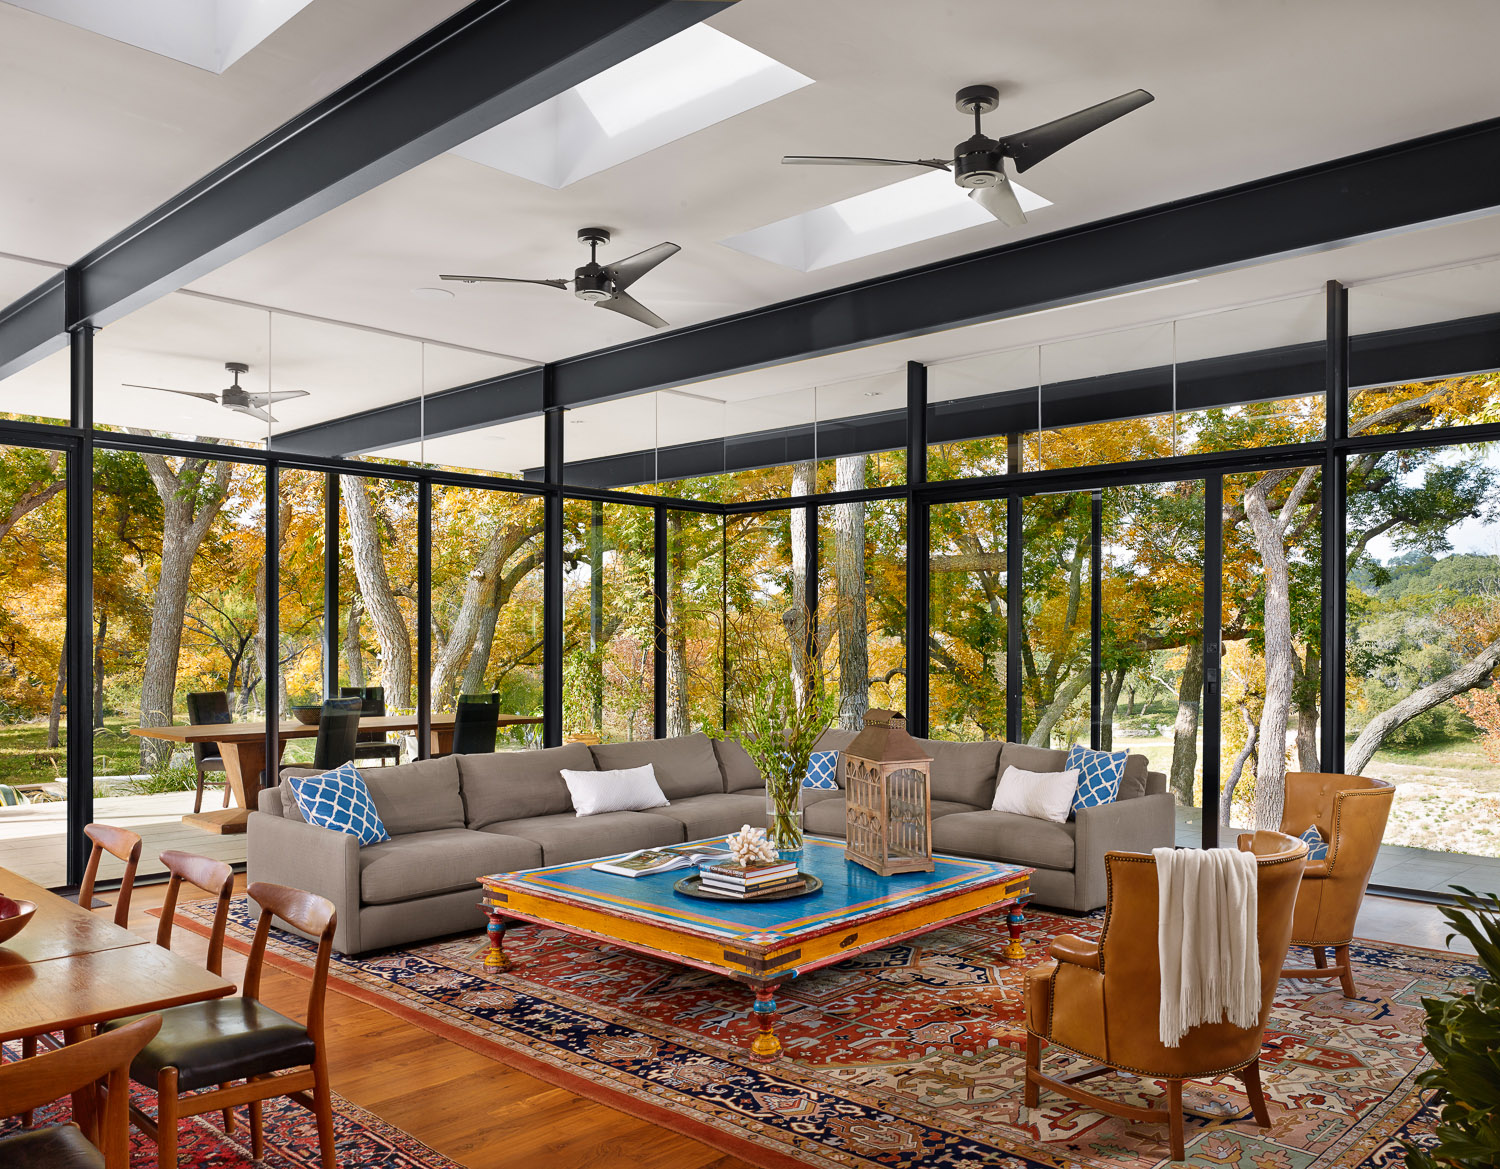 Outdoor living from within these steel and glass walls.